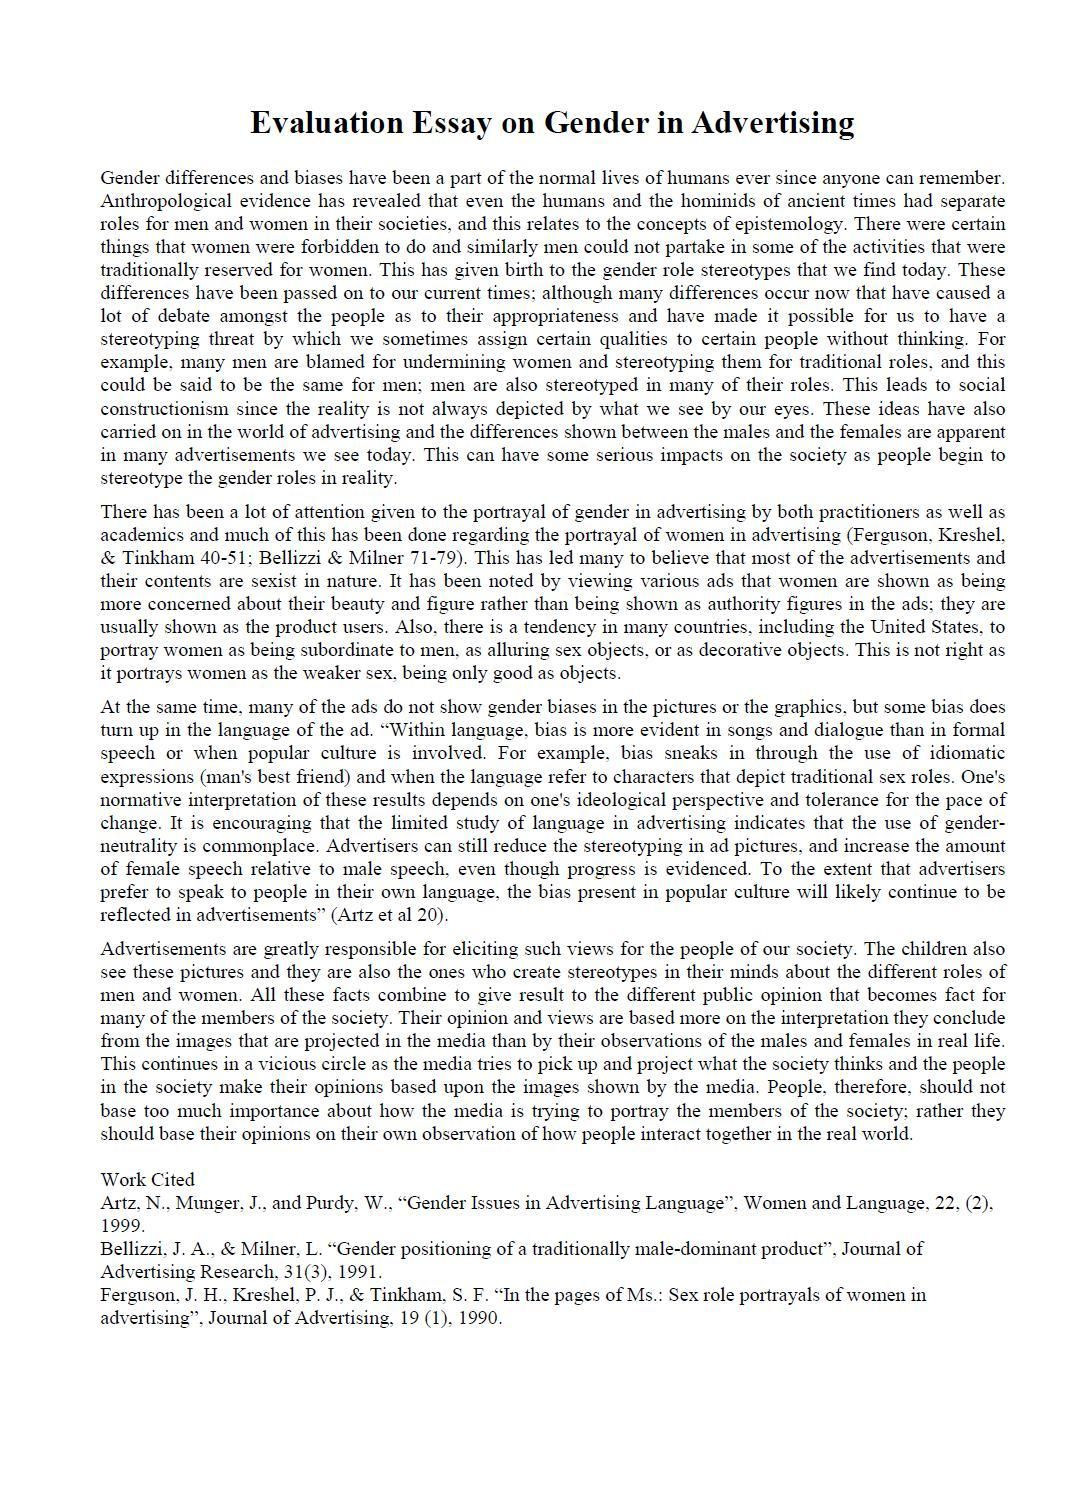 007 Ideas Of Evaluative Essays Stunning Writing An Evaluation And Arg Argument Shocking Essay Example Full